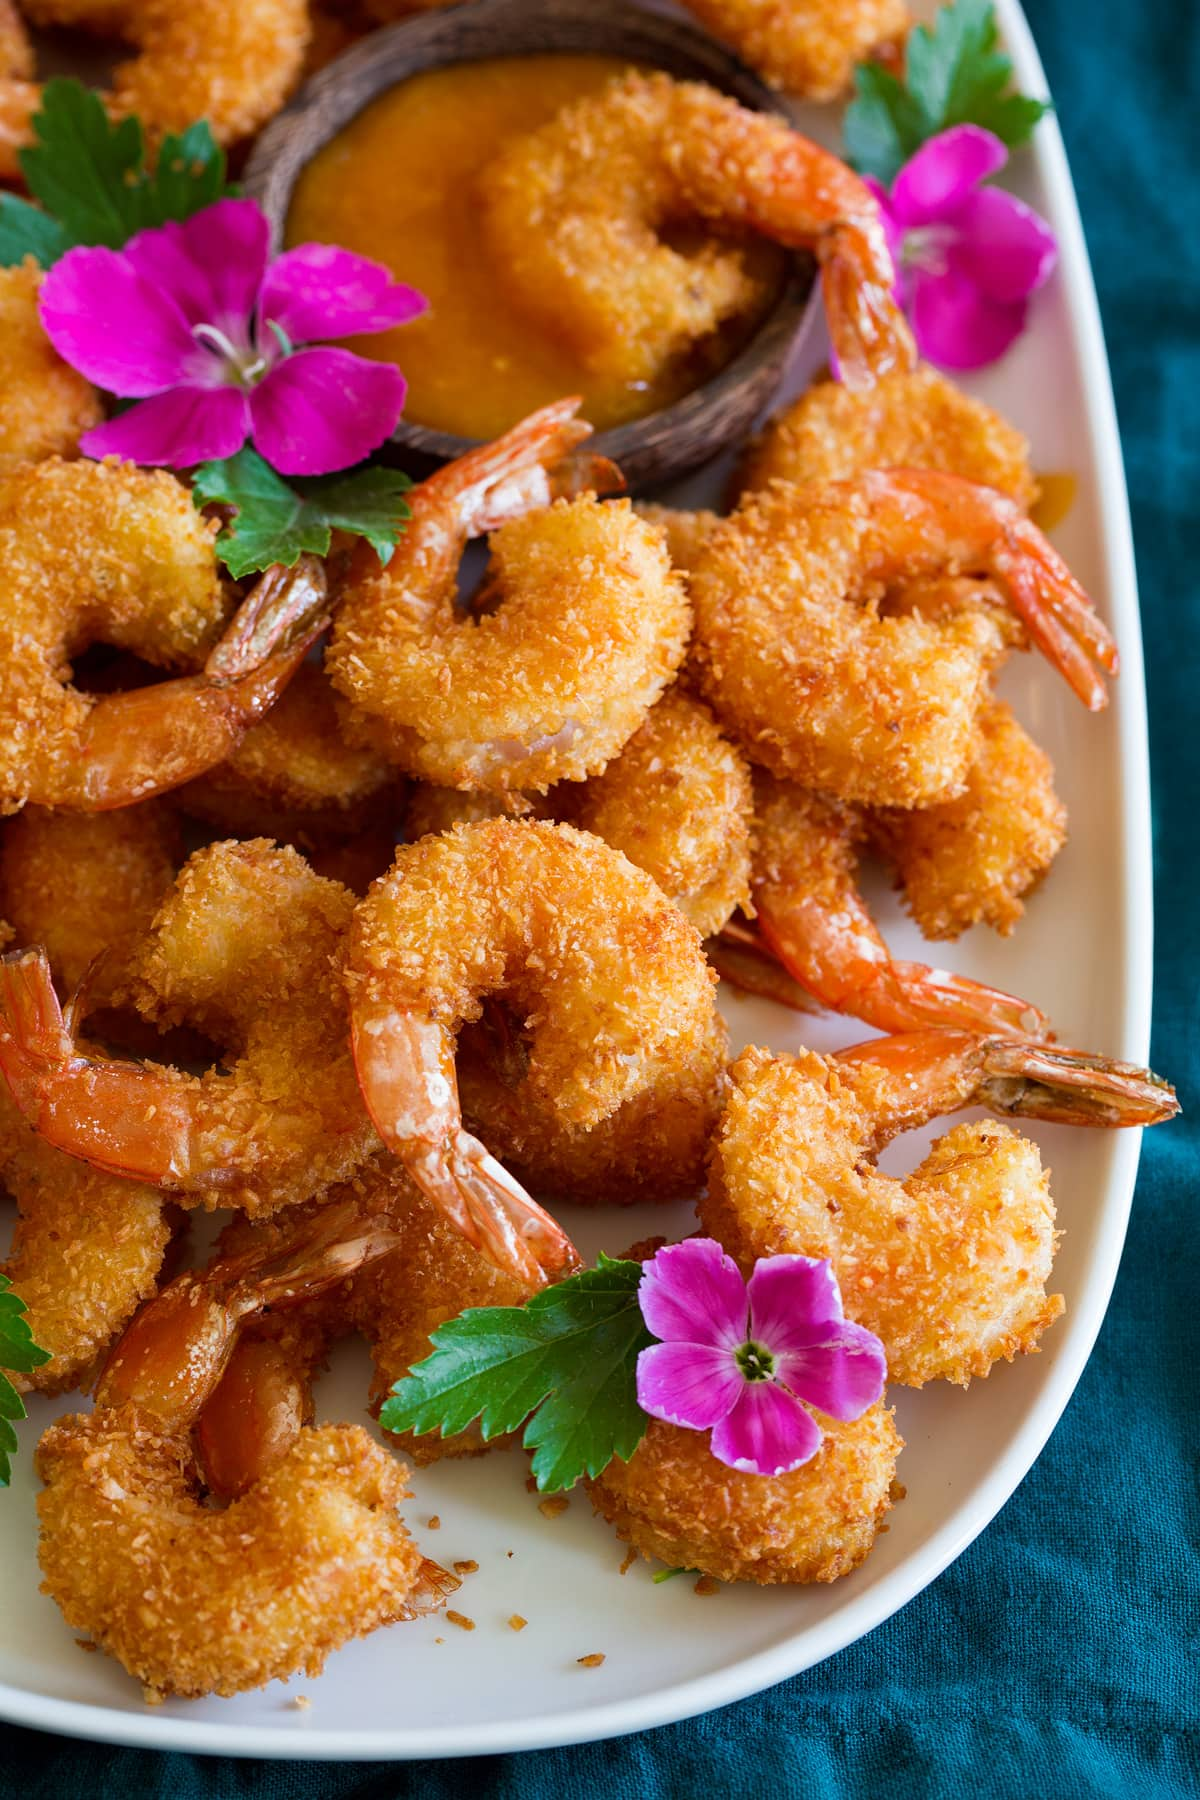 Photo: Coconut Shrimp shown close up from a side angle on a platter.